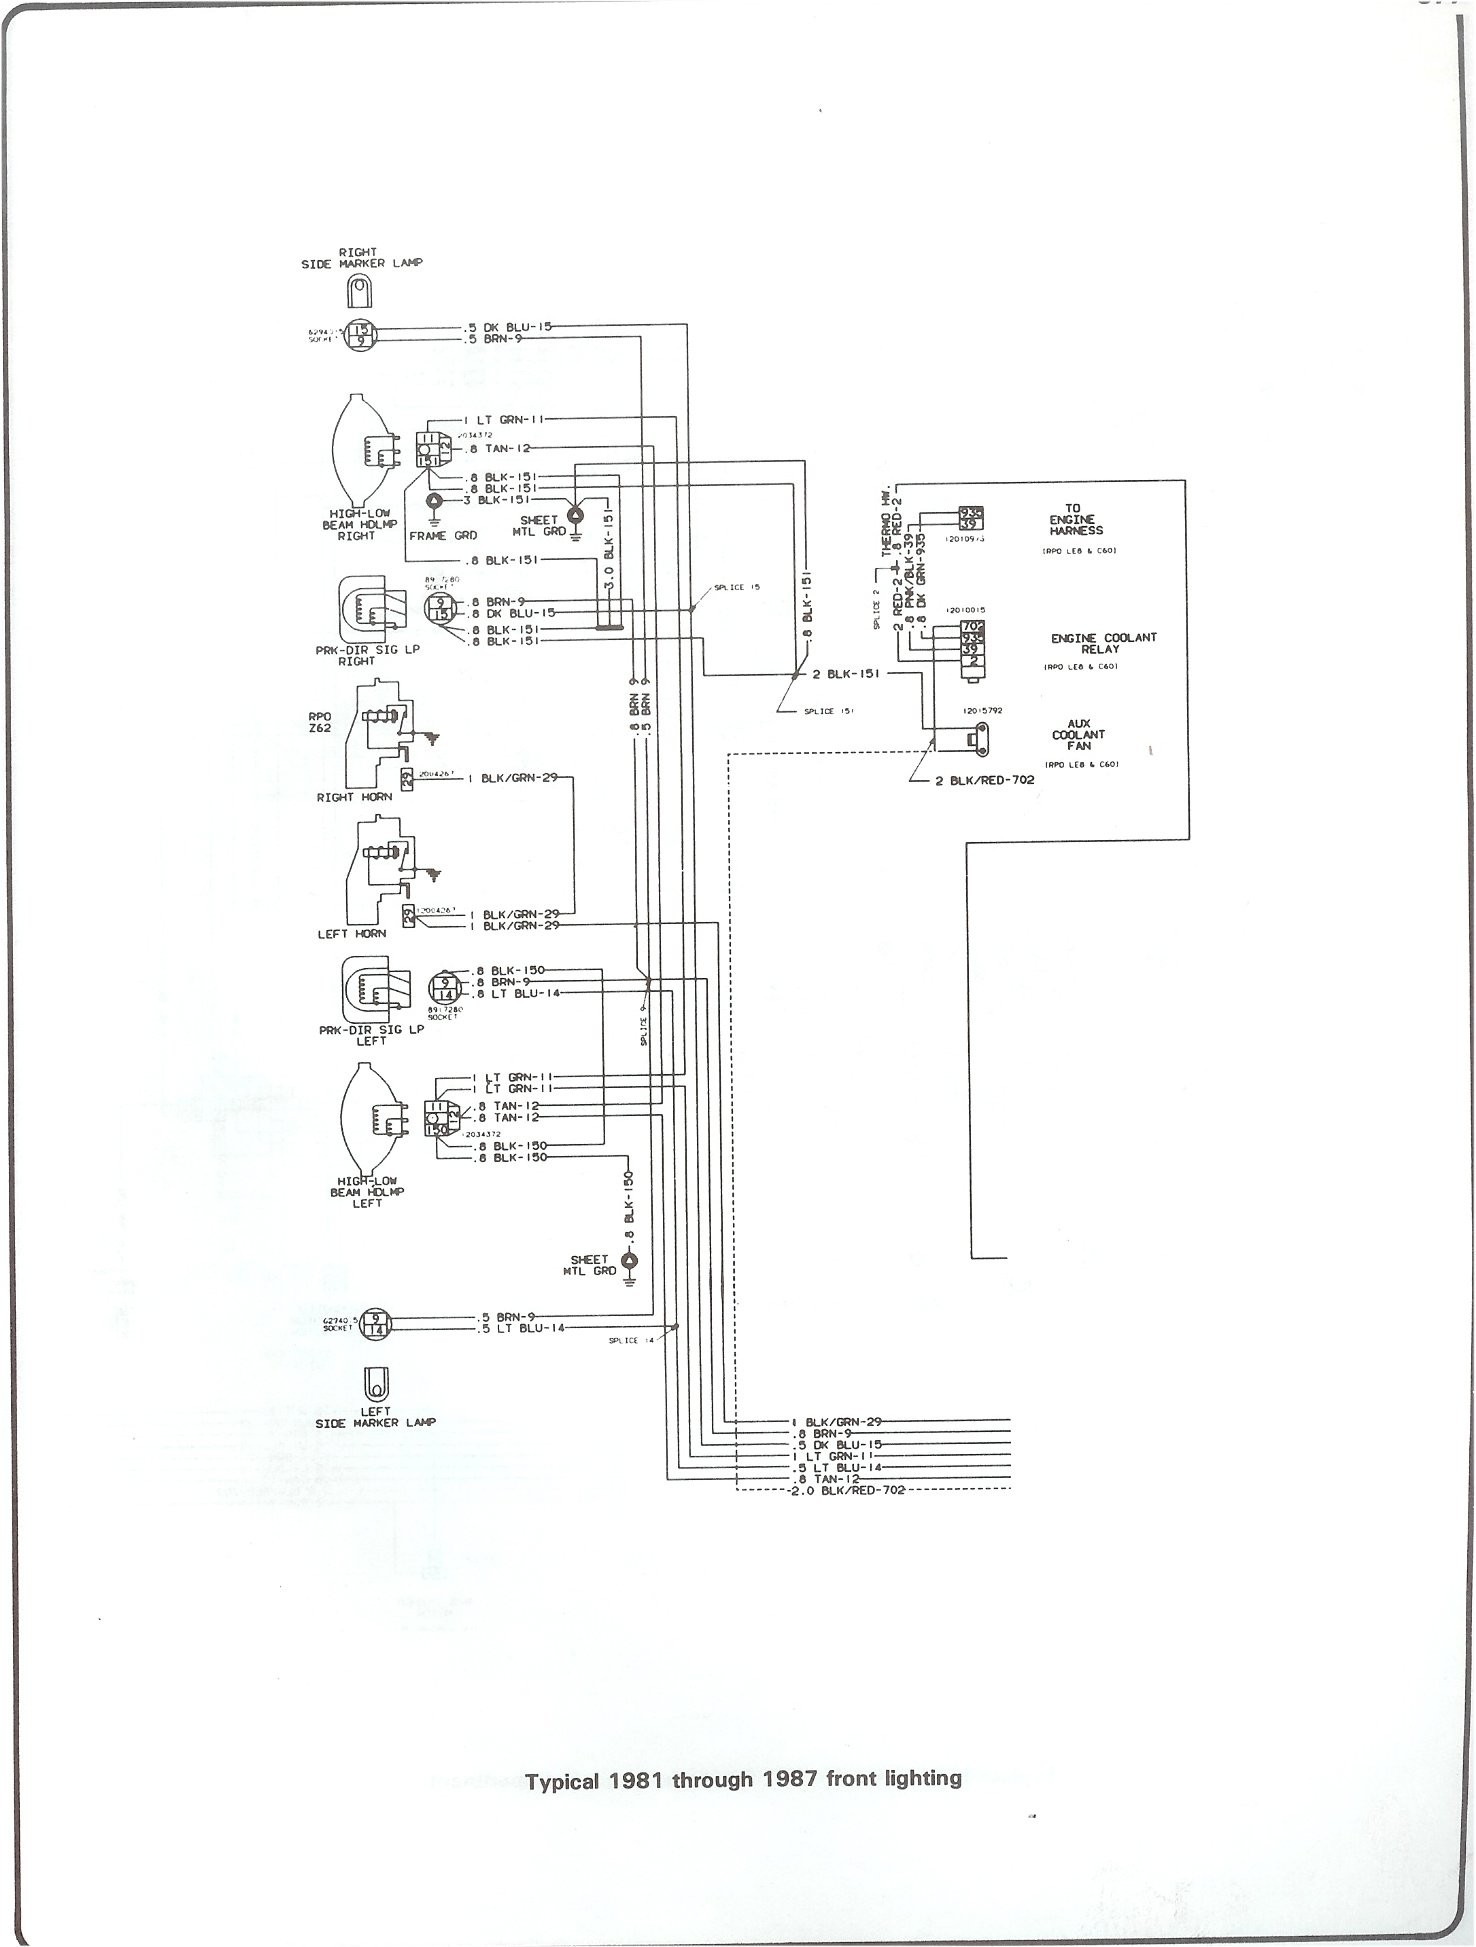 Chevy S10 Tail Light Wiring Diagram Wiring Diagram 81 Chevy Truck Of Chevy S10 Tail Light Wiring Diagram